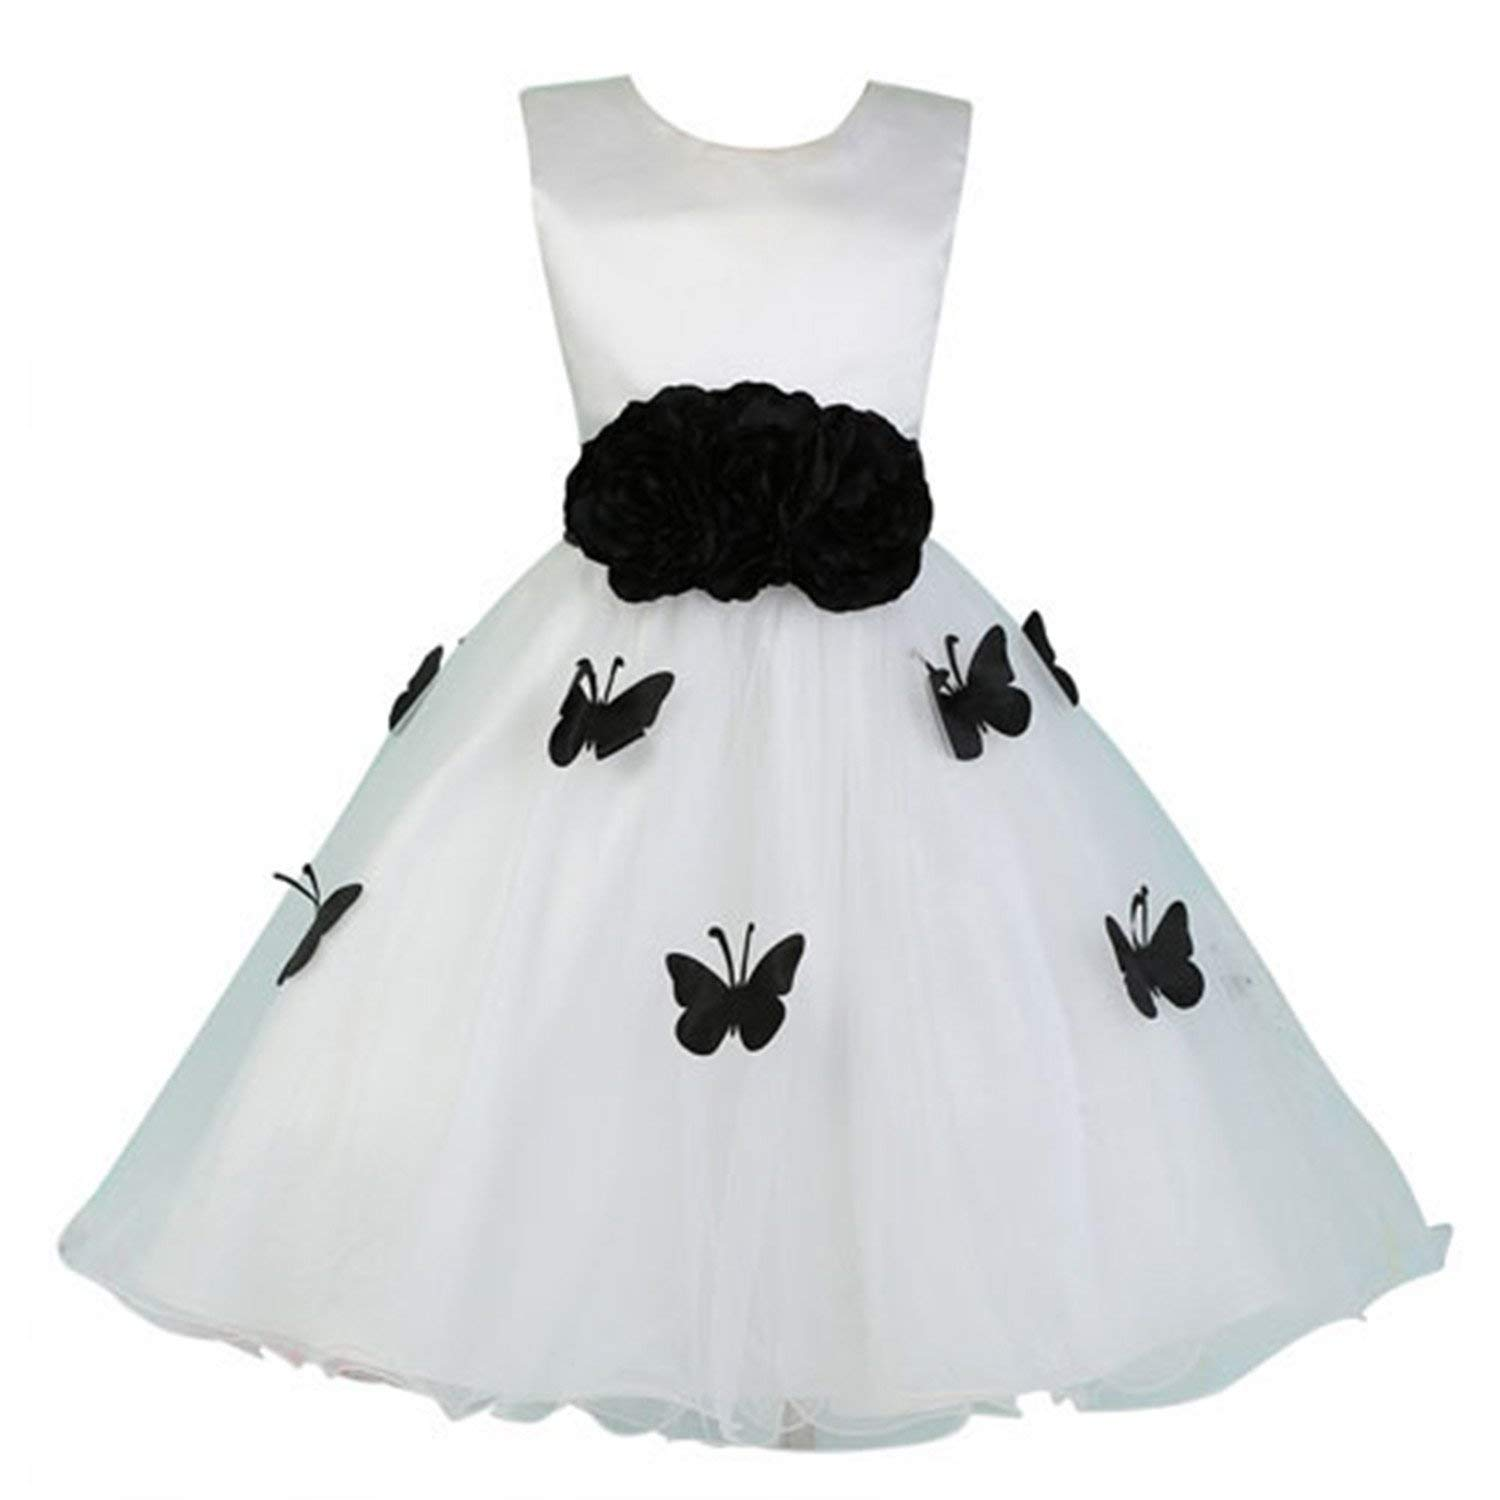 Cheap Damask Flower Girl Dress Find Damask Flower Girl Dress Deals